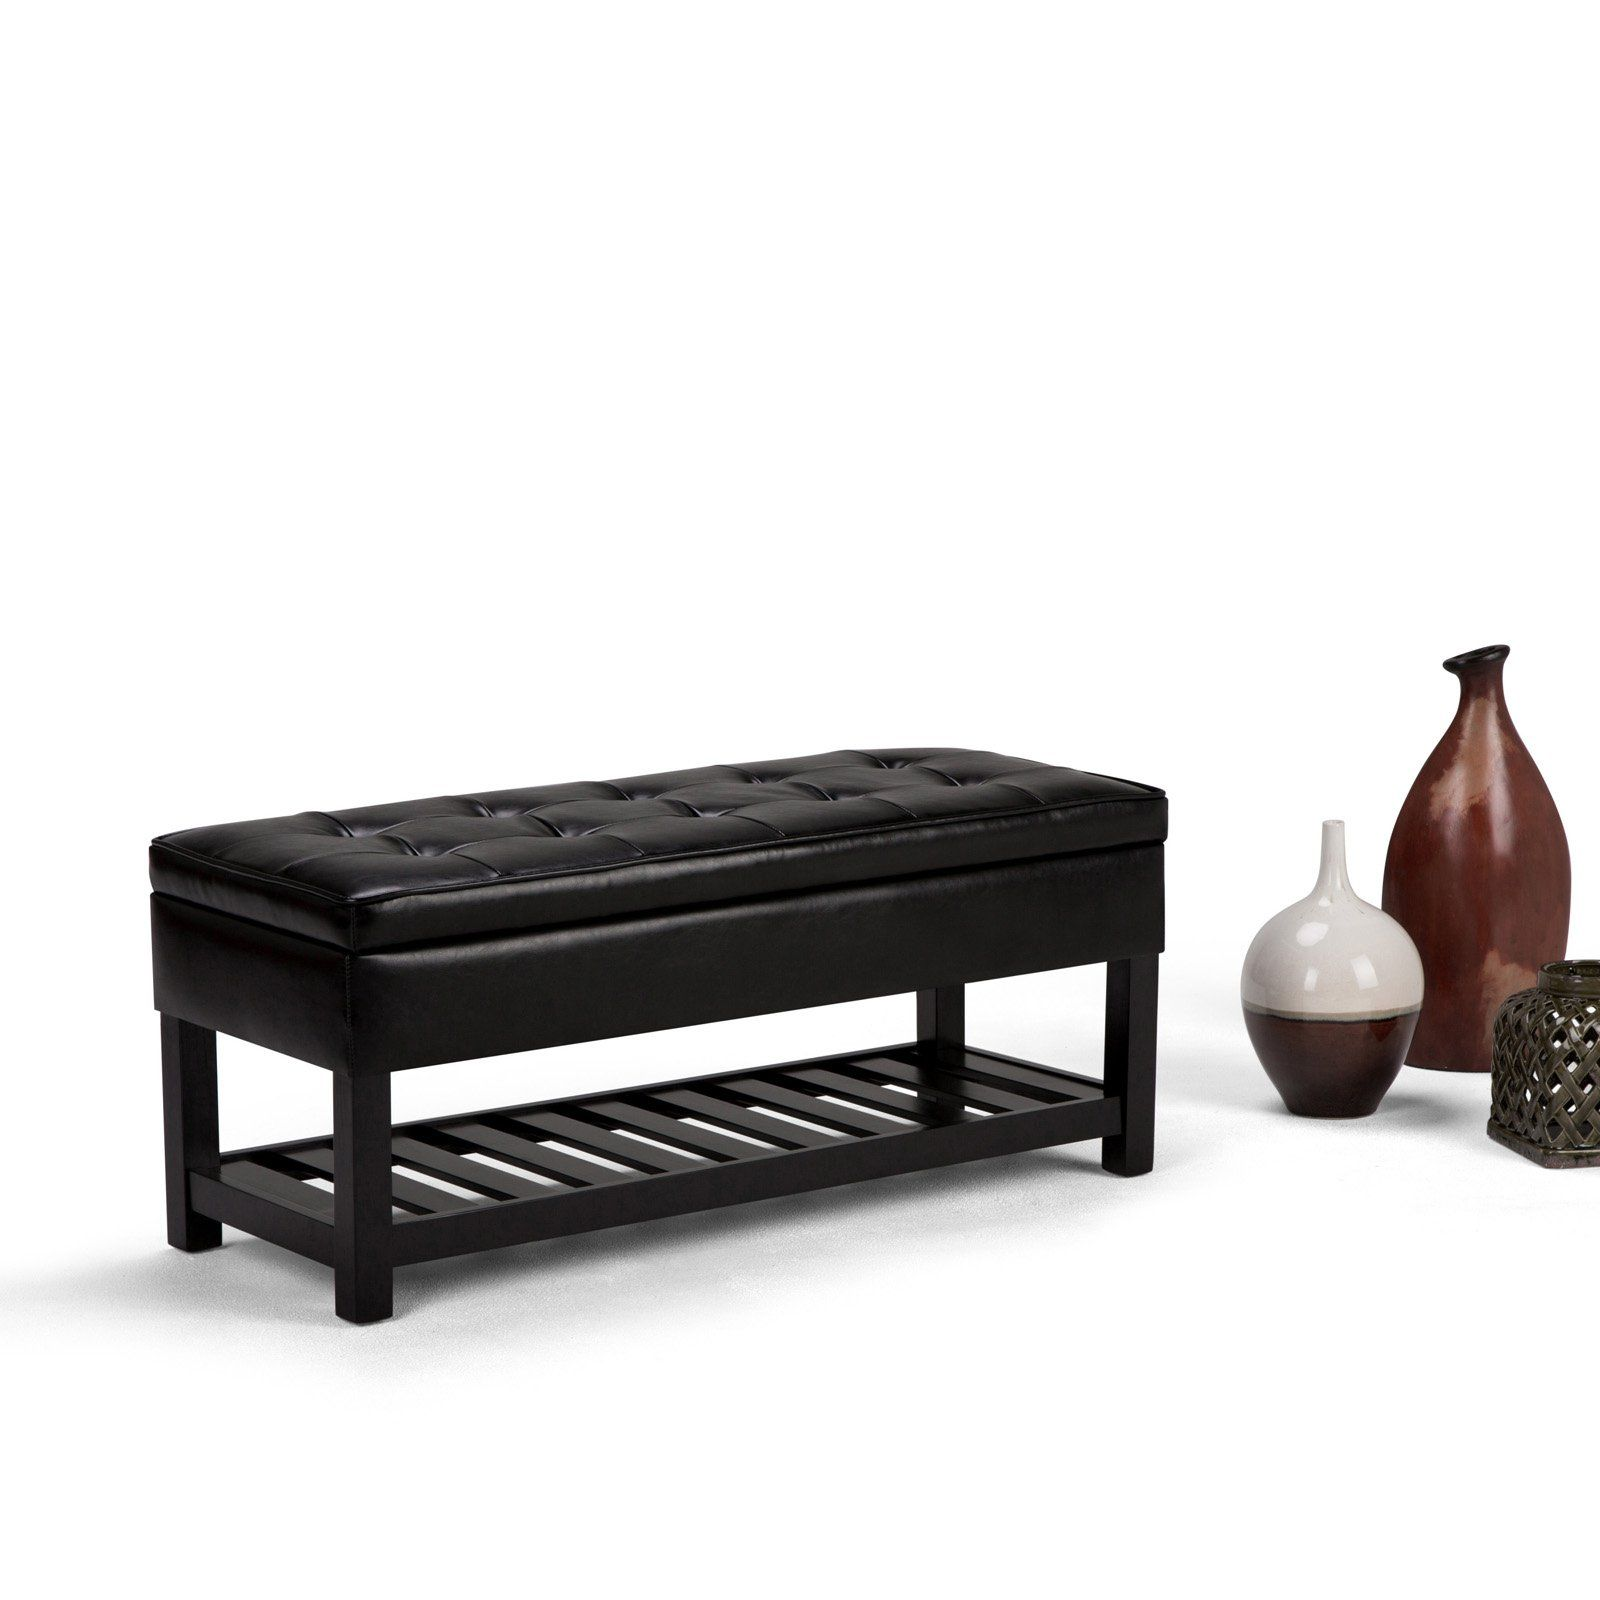 Brooklyn Max City Faux Leather Entryway Ottoman Bench Storage